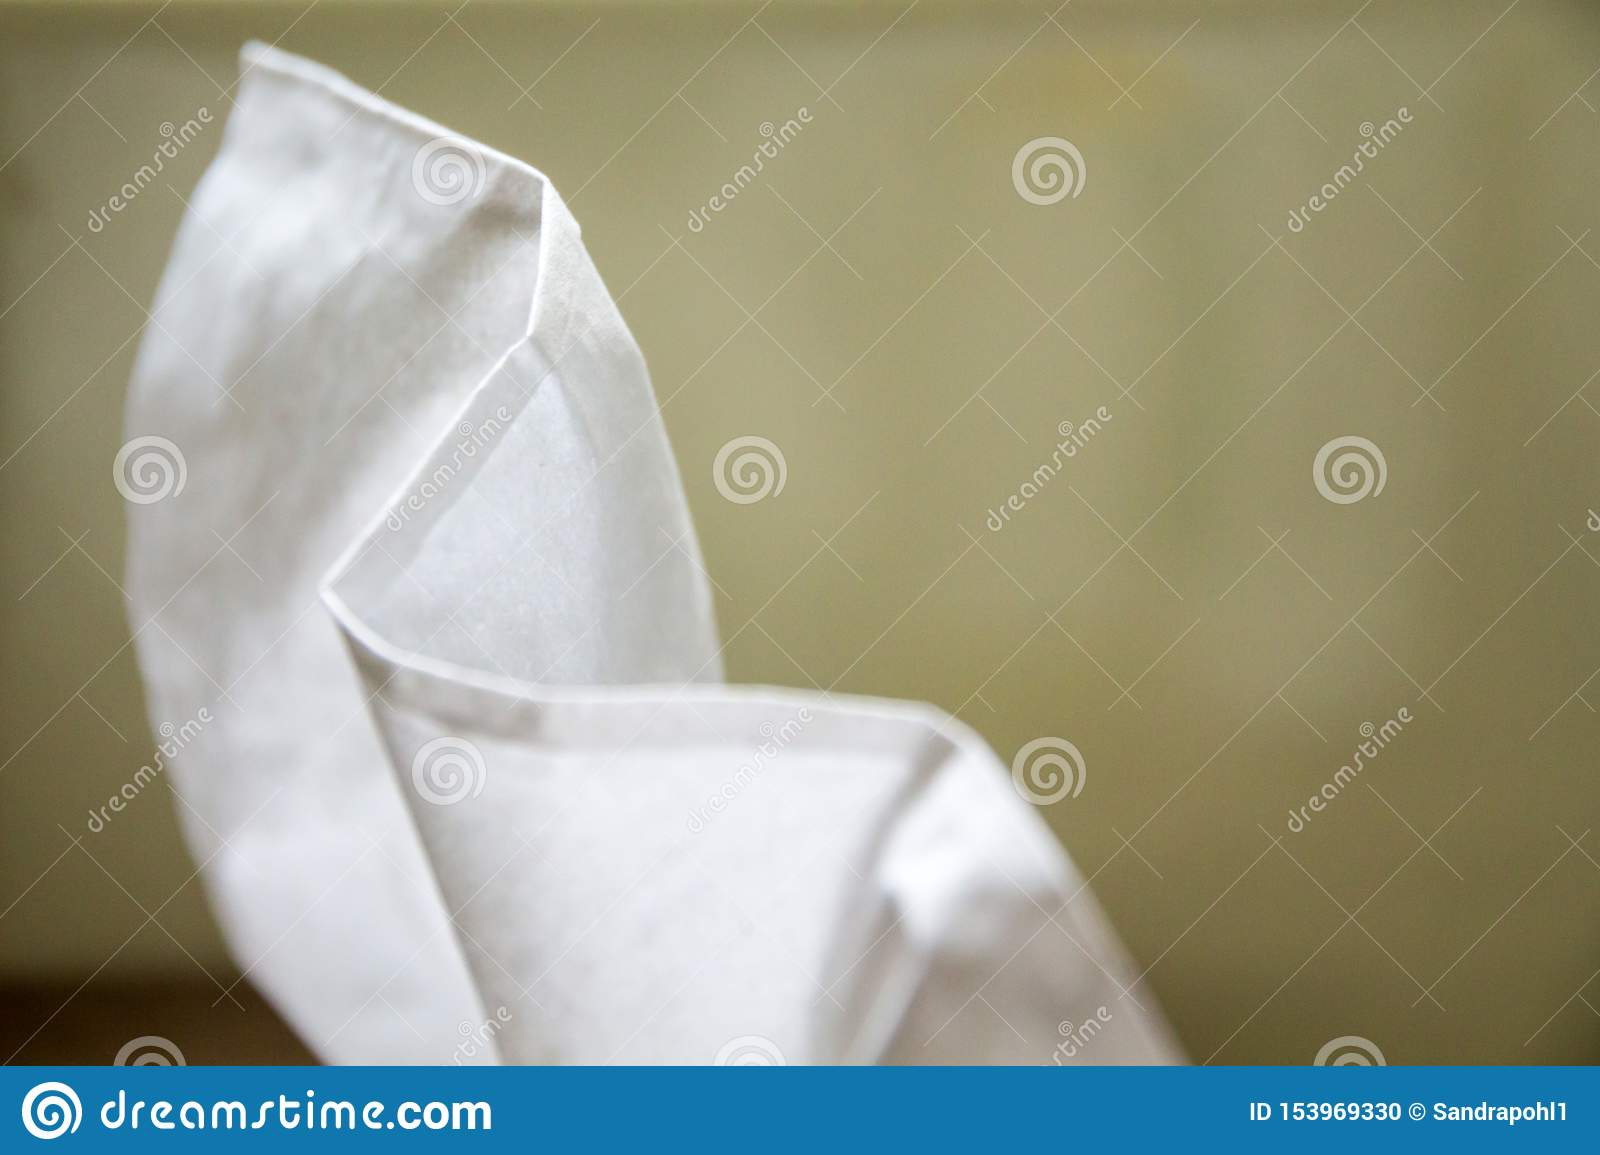 White towelette on green background